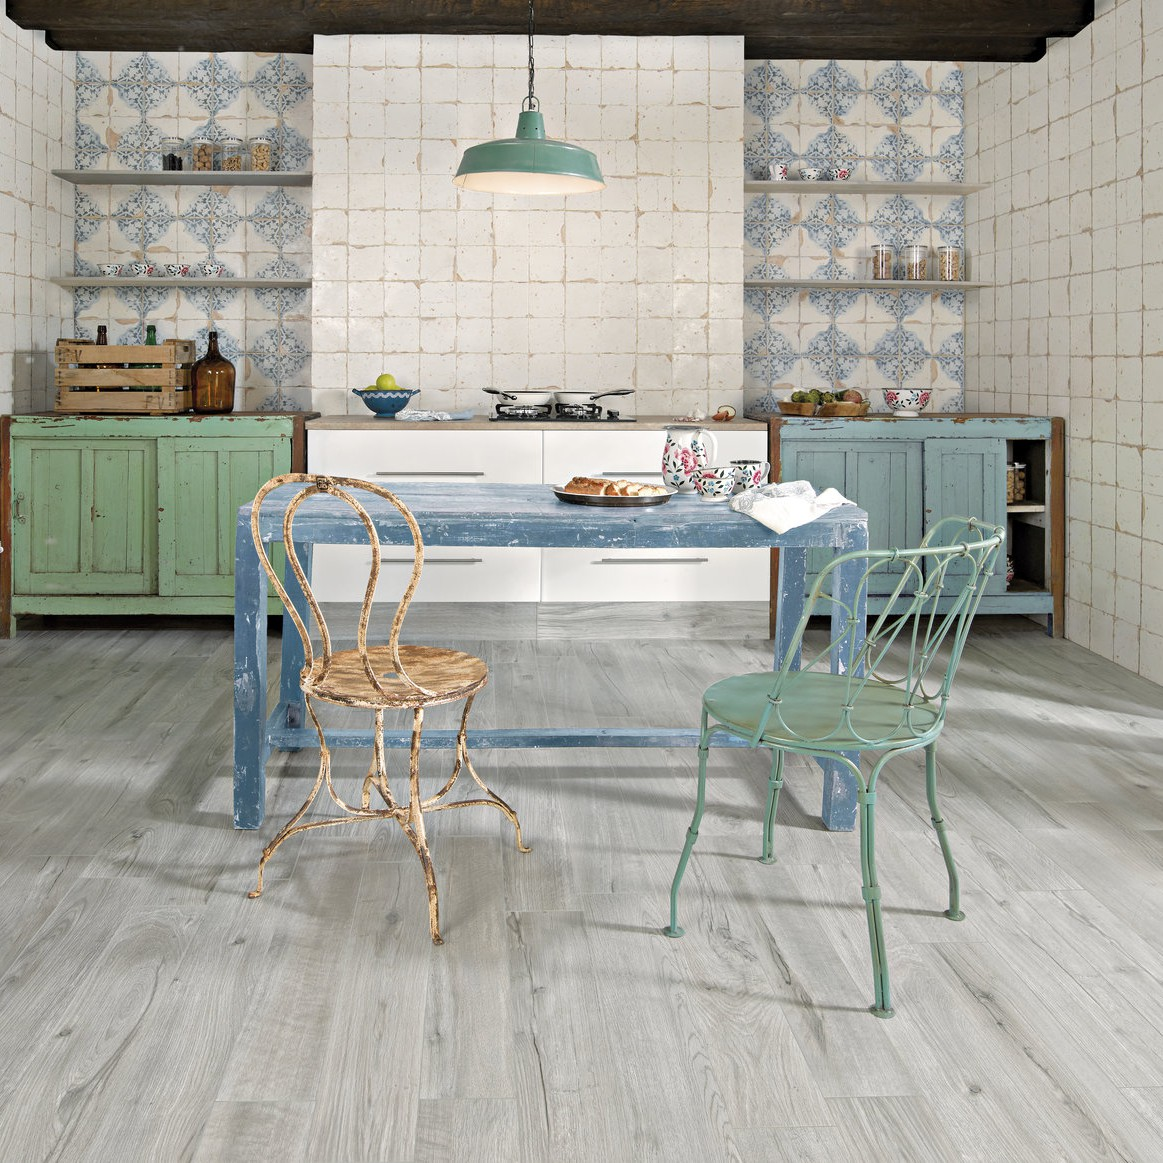 Artisan Rustic Effect Tile Ceramic Wall Floor Tile